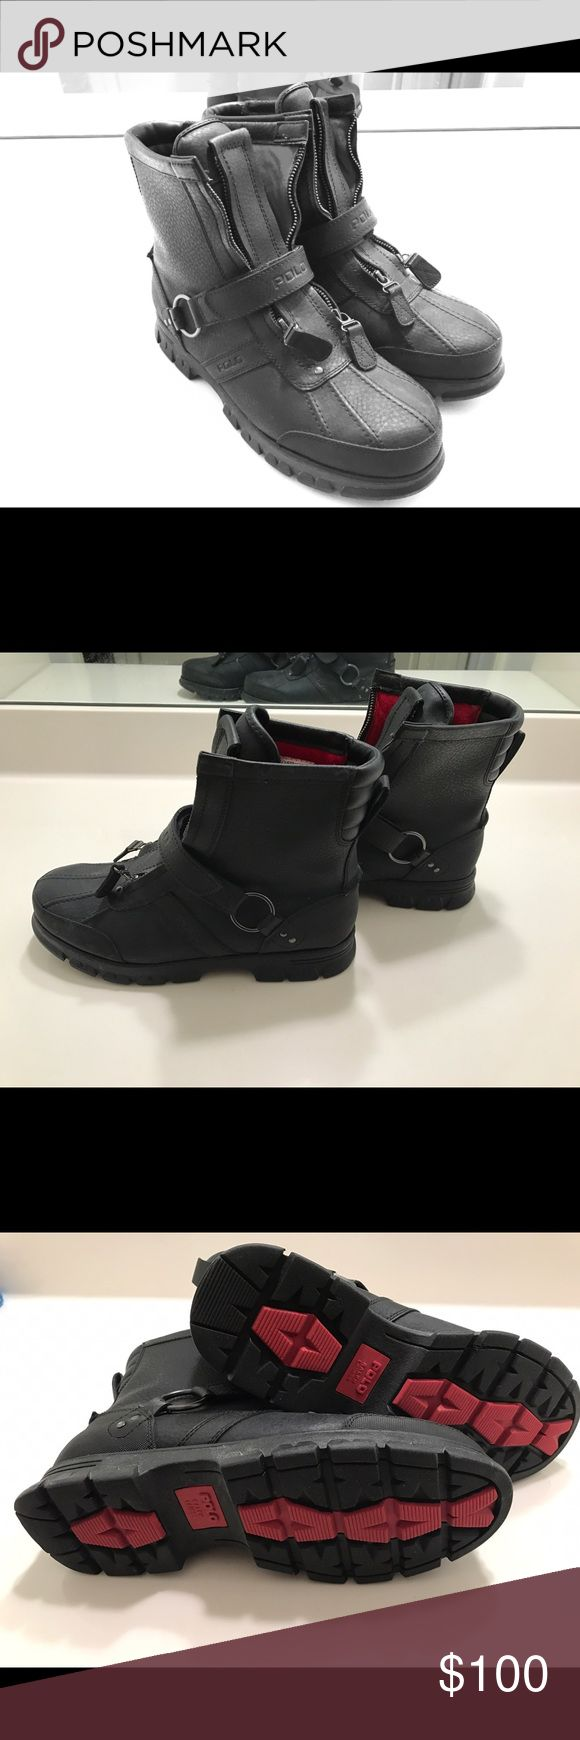 1000 ideas about polo boots on polo ralph